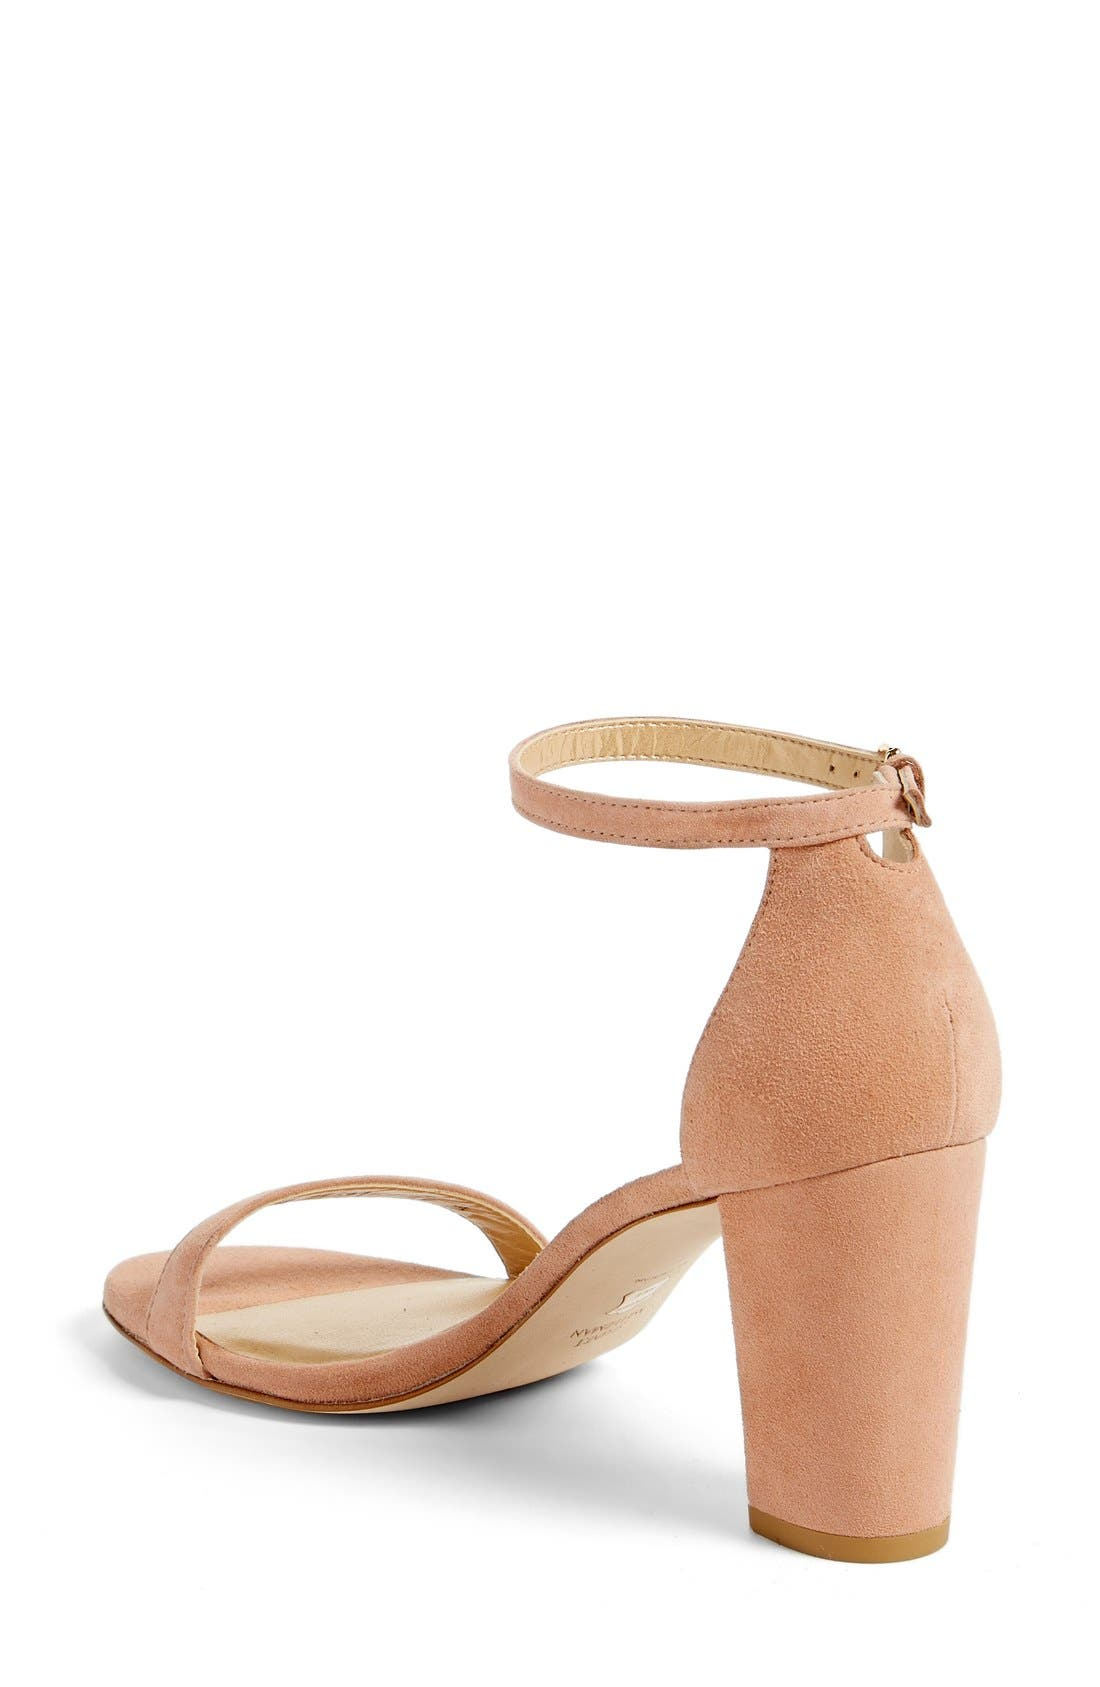 NearlyNude Ankle Strap Sandal,                             Alternate thumbnail 72, color,